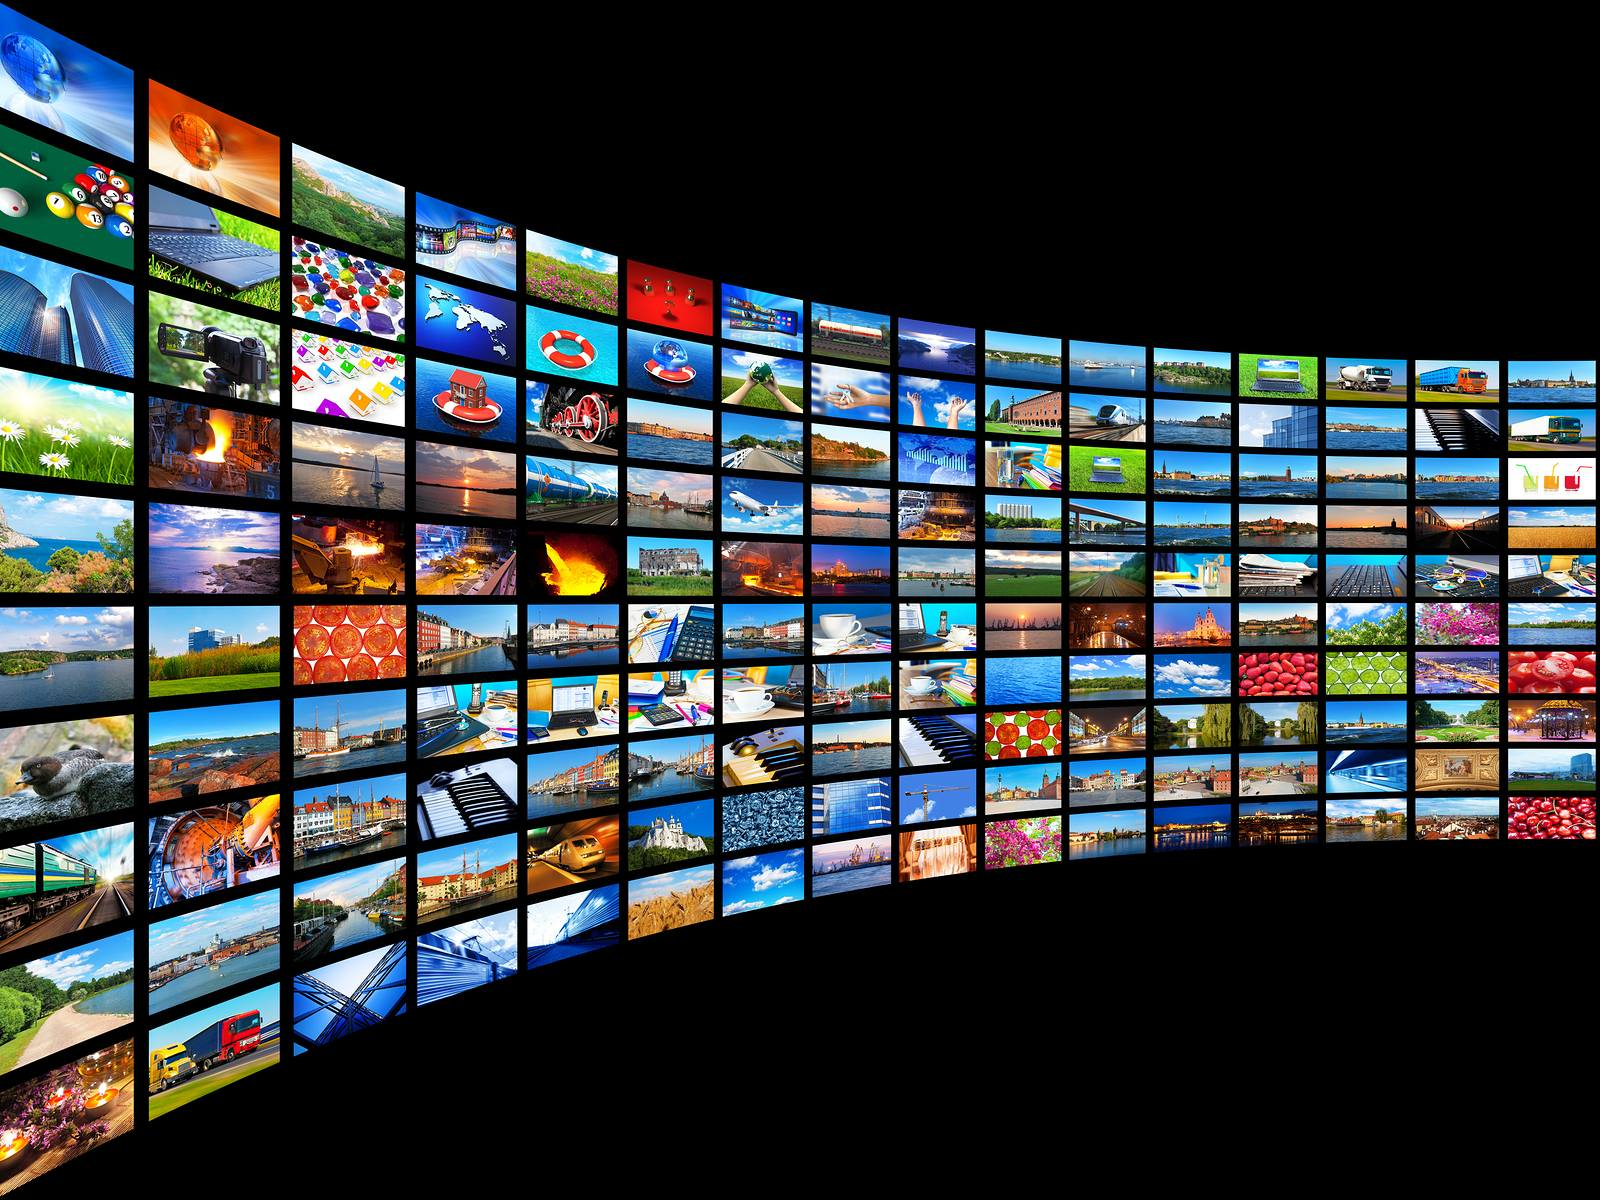 Ruling gives hope to internet TV streaming and rebroadcasting, Aereo style